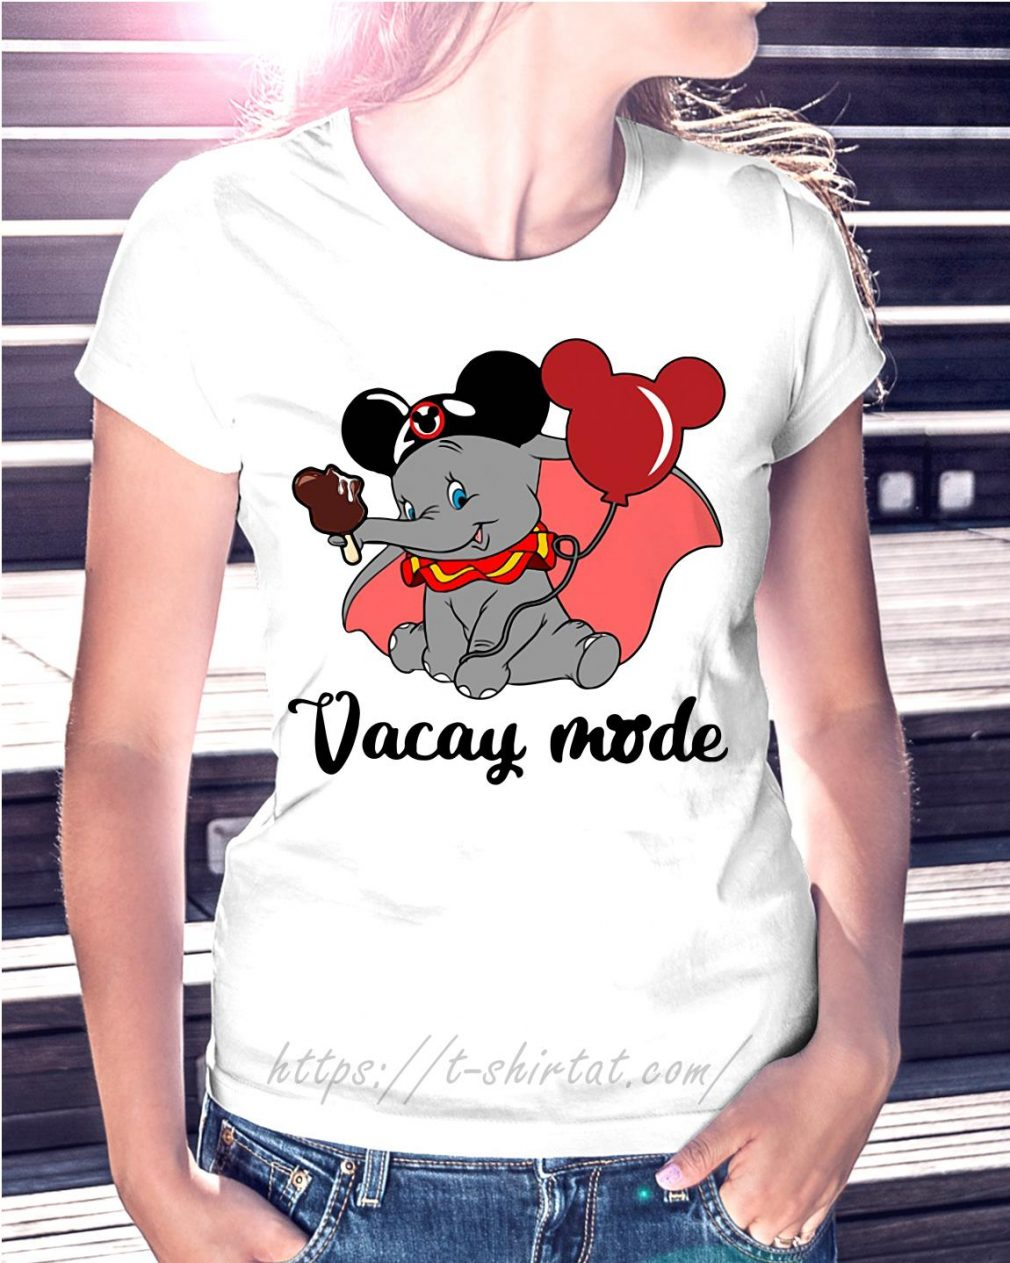 Elephant with Mickey Mouse ears vacay mode T-shirt